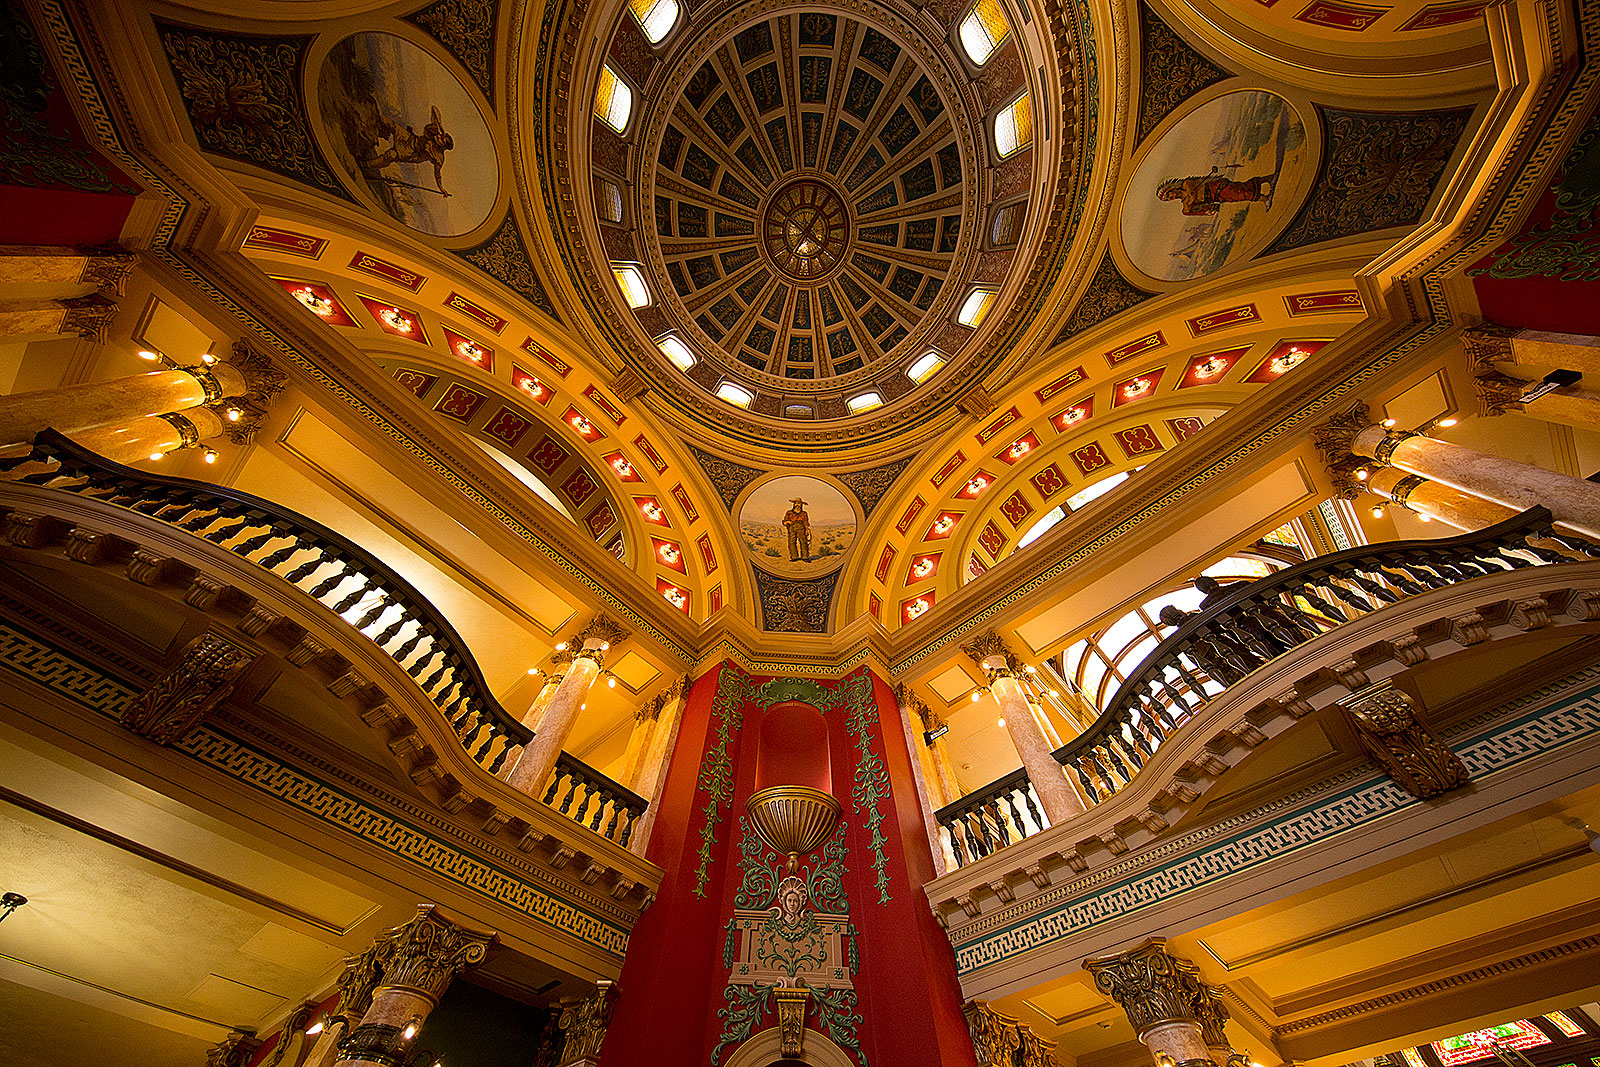 Interior of the dome of the Montana state capitol building in Helena.